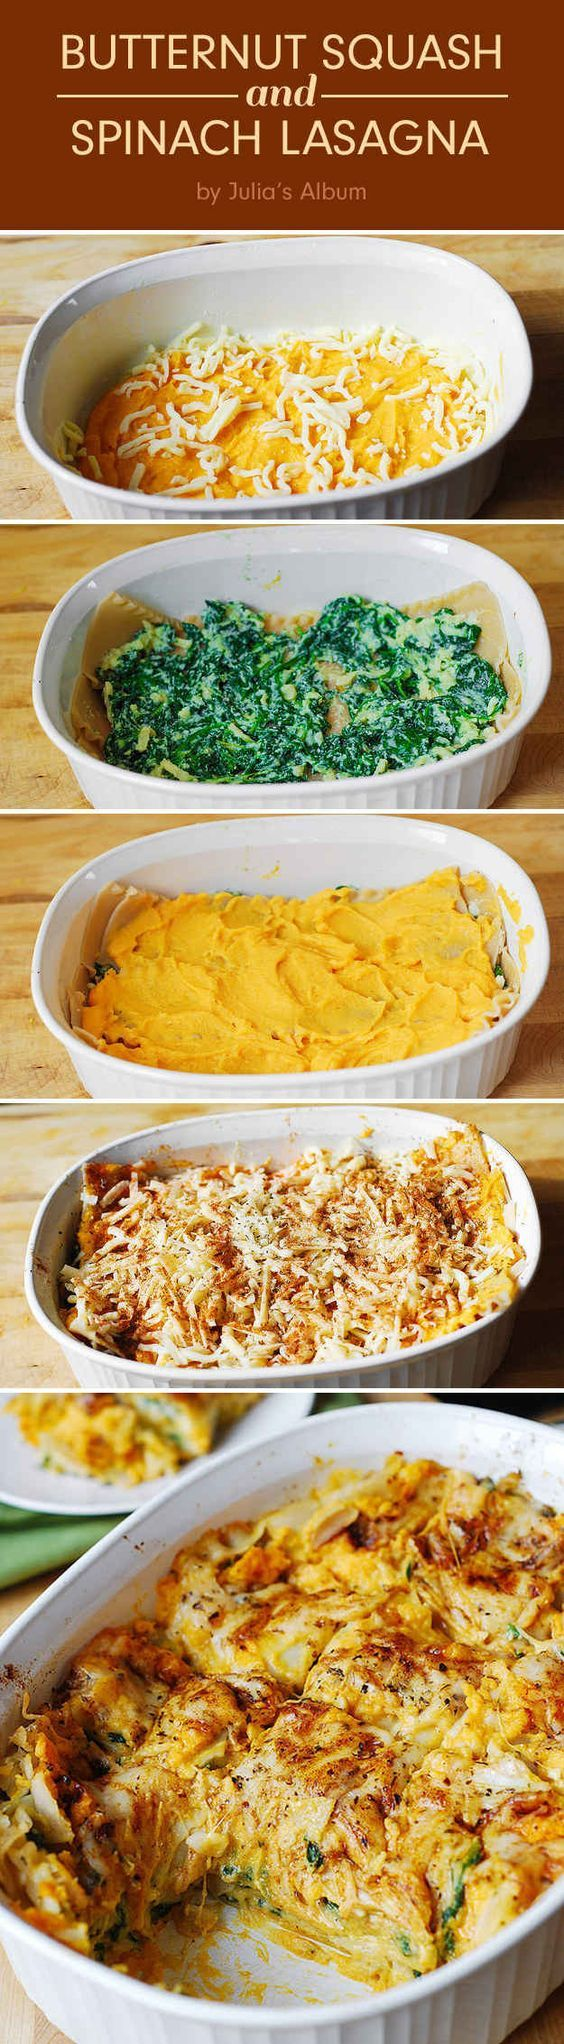 Butternut Squash and Spinach Lasagna (you can easily use gluten free noodles!)